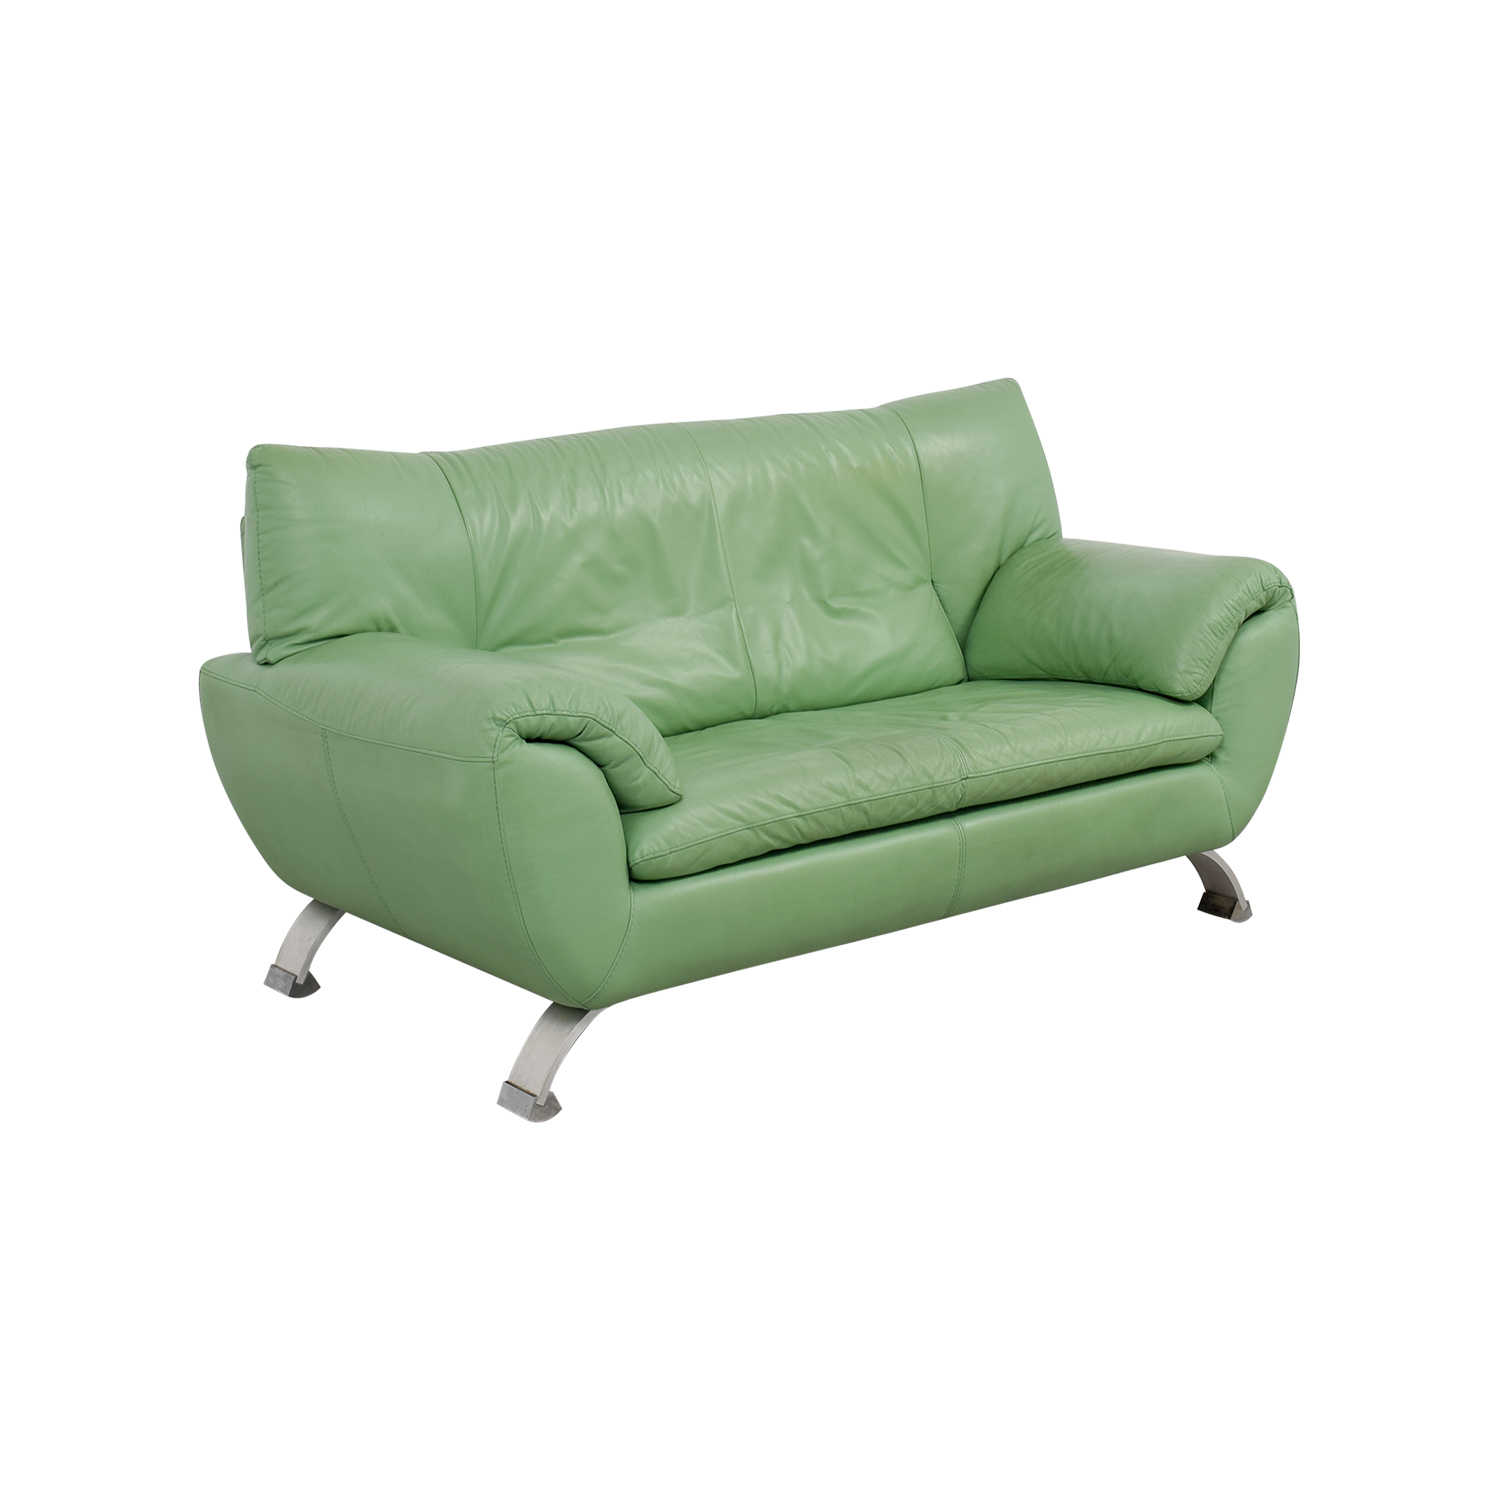 74 off nicoletti nicoletti leather green sofa sofas. Black Bedroom Furniture Sets. Home Design Ideas